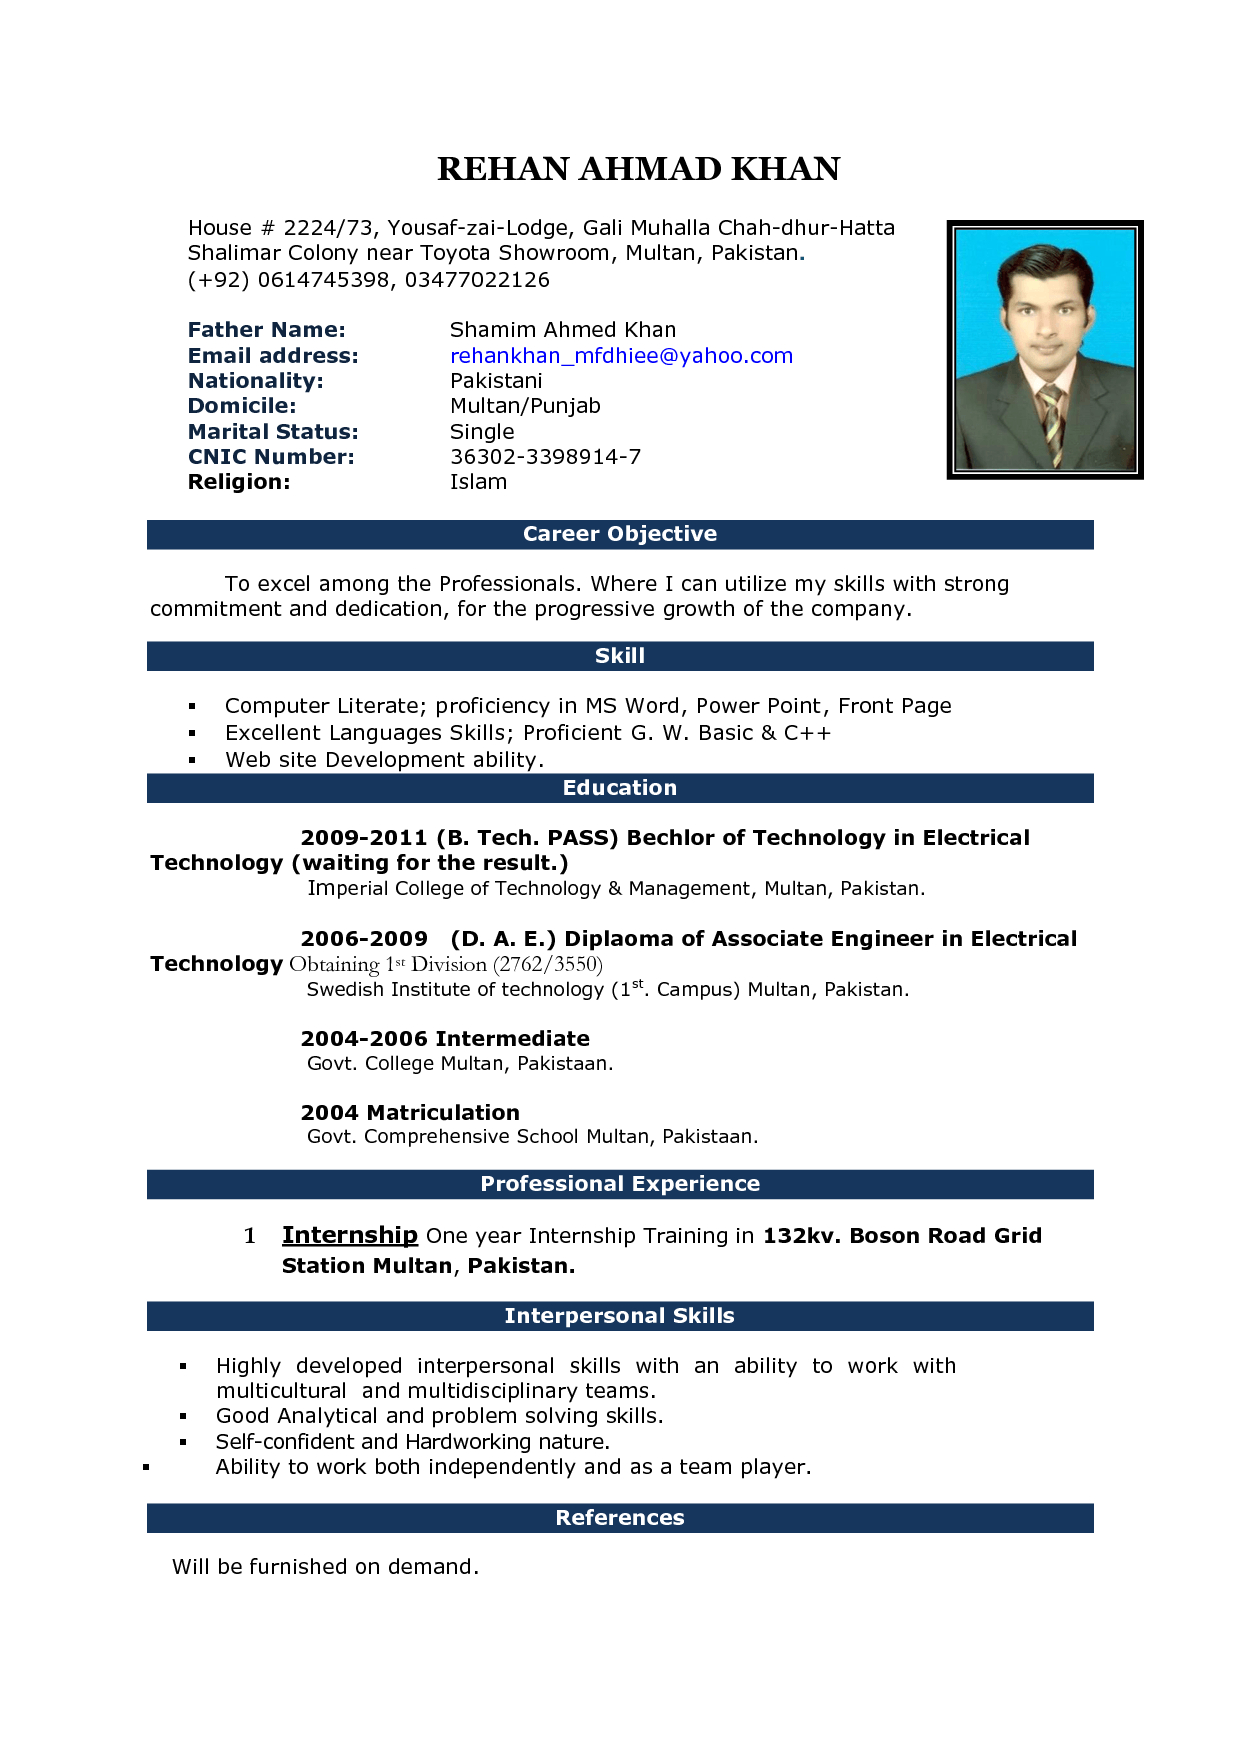 Cv Sample Format In Ms Word Resume Formatting In Word Resume throughout sizing 1241 X 1753